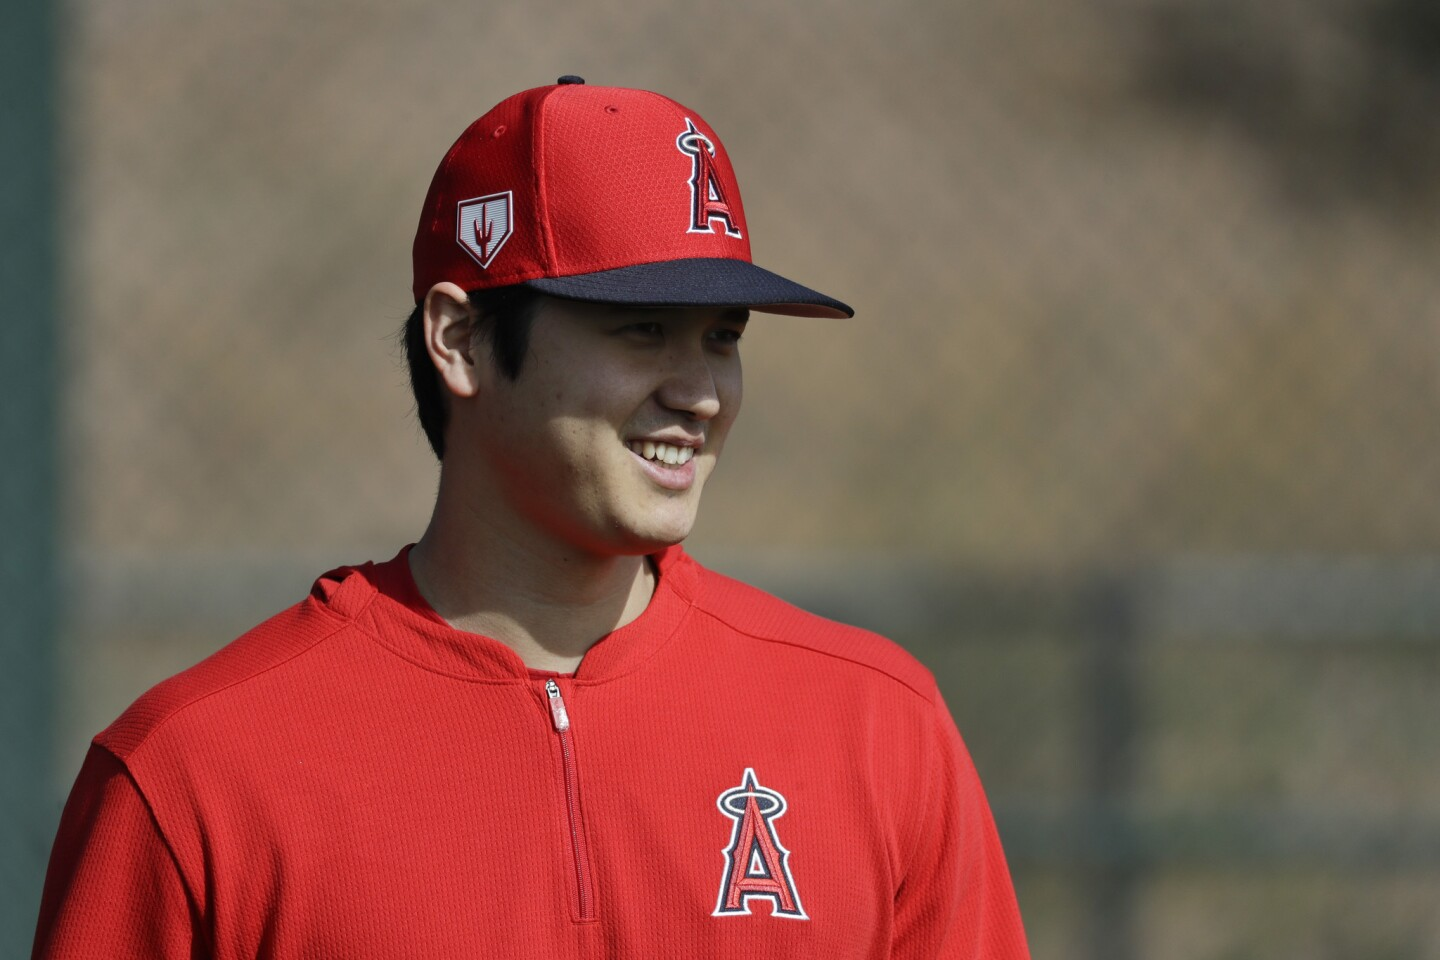 Los Angeles Angels' Shohei Ohtani, of Japan, walks on the practice field at their spring baseball training facility in Tempe, Ariz., Friday, Feb. 15, 2019. (AP Photo/Chris Carlson)